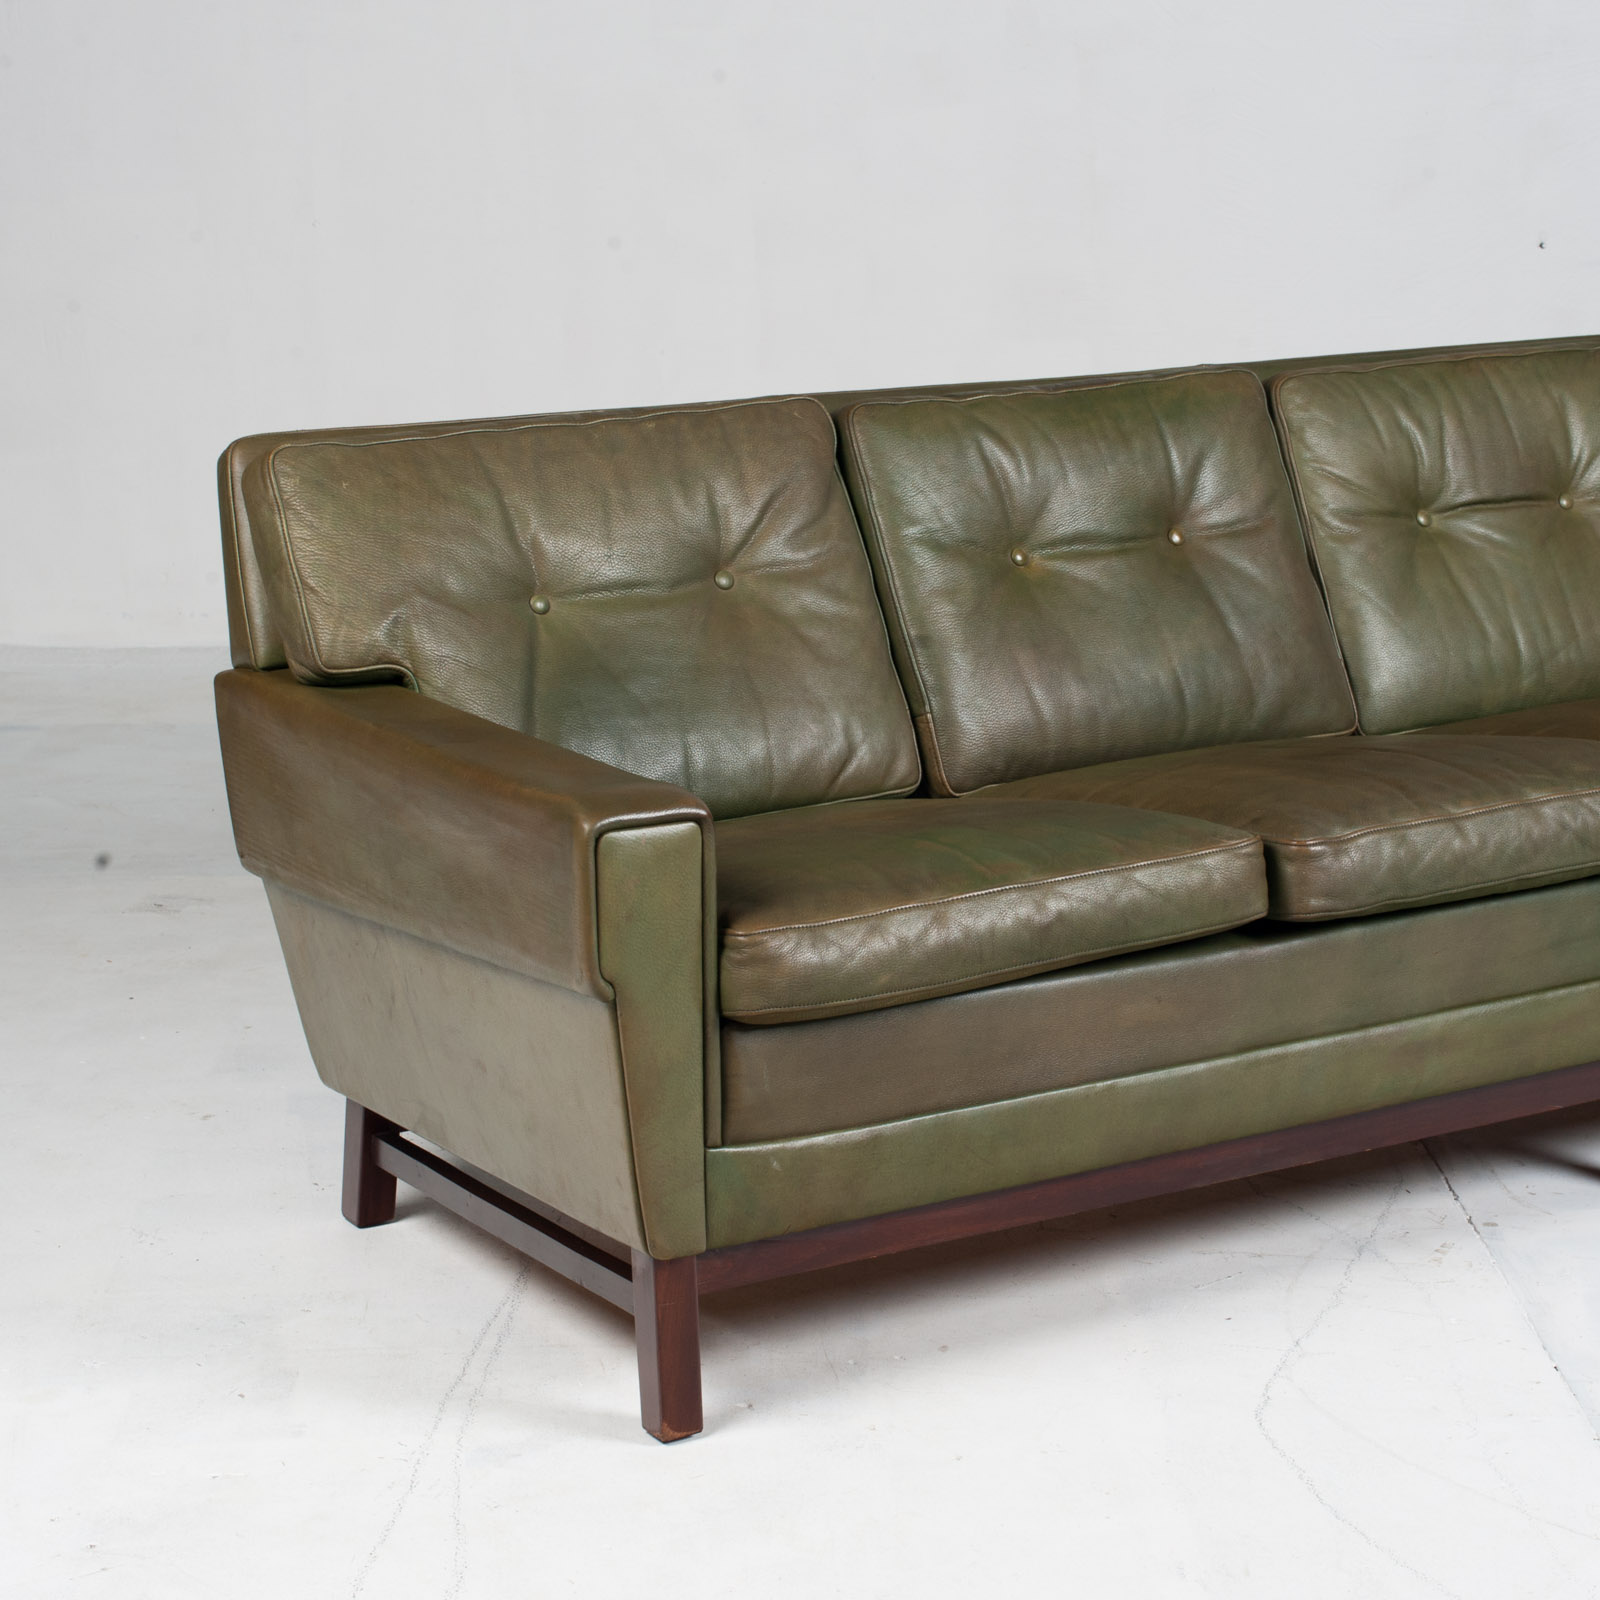 4 Seat Sofa In Olive Leather 1960s Denmark 03